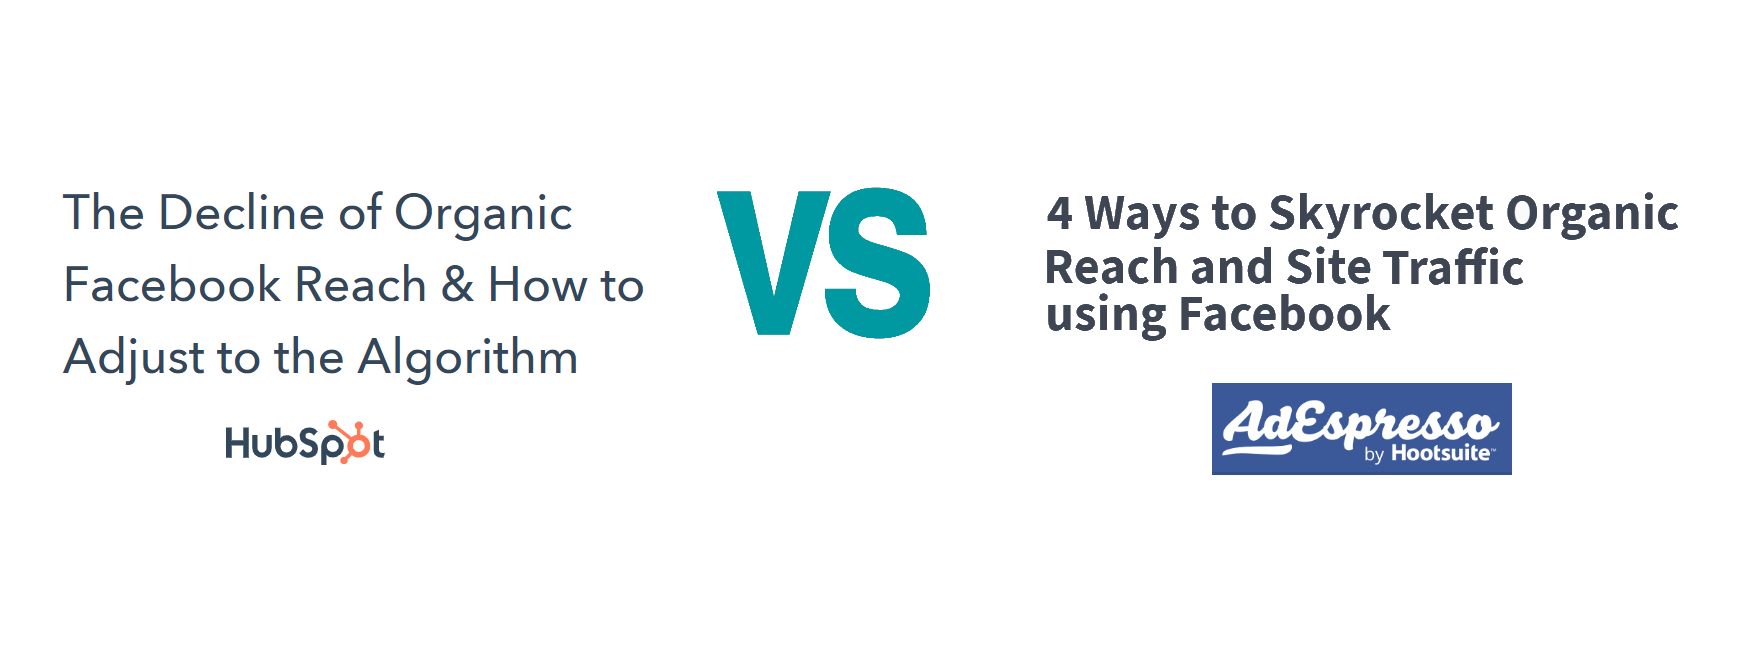 """"""" The Decline of Organic Facebook Reach & How to Adjust to the Algorithm """" (Hubspot) vs. """" 4 Ways to Skyrocket Organic Reach and Site Traffic using Facebook """" (AdEspresso)"""